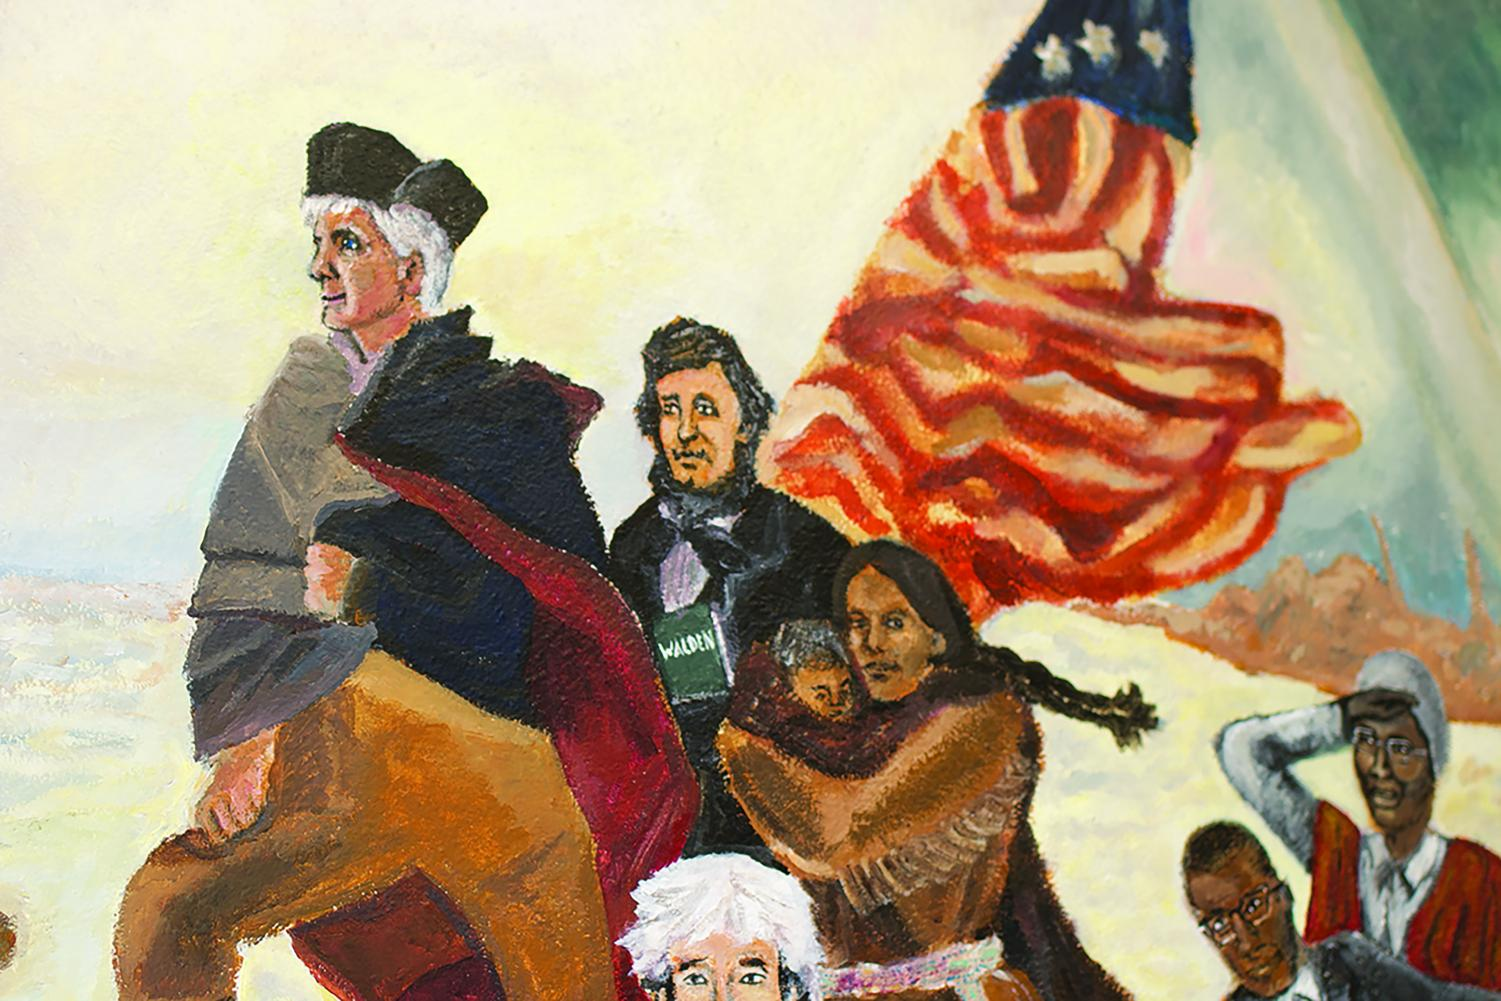 The mural of former teacher Timothy Mitchell painted as George Washington was met by controversy in 2011.